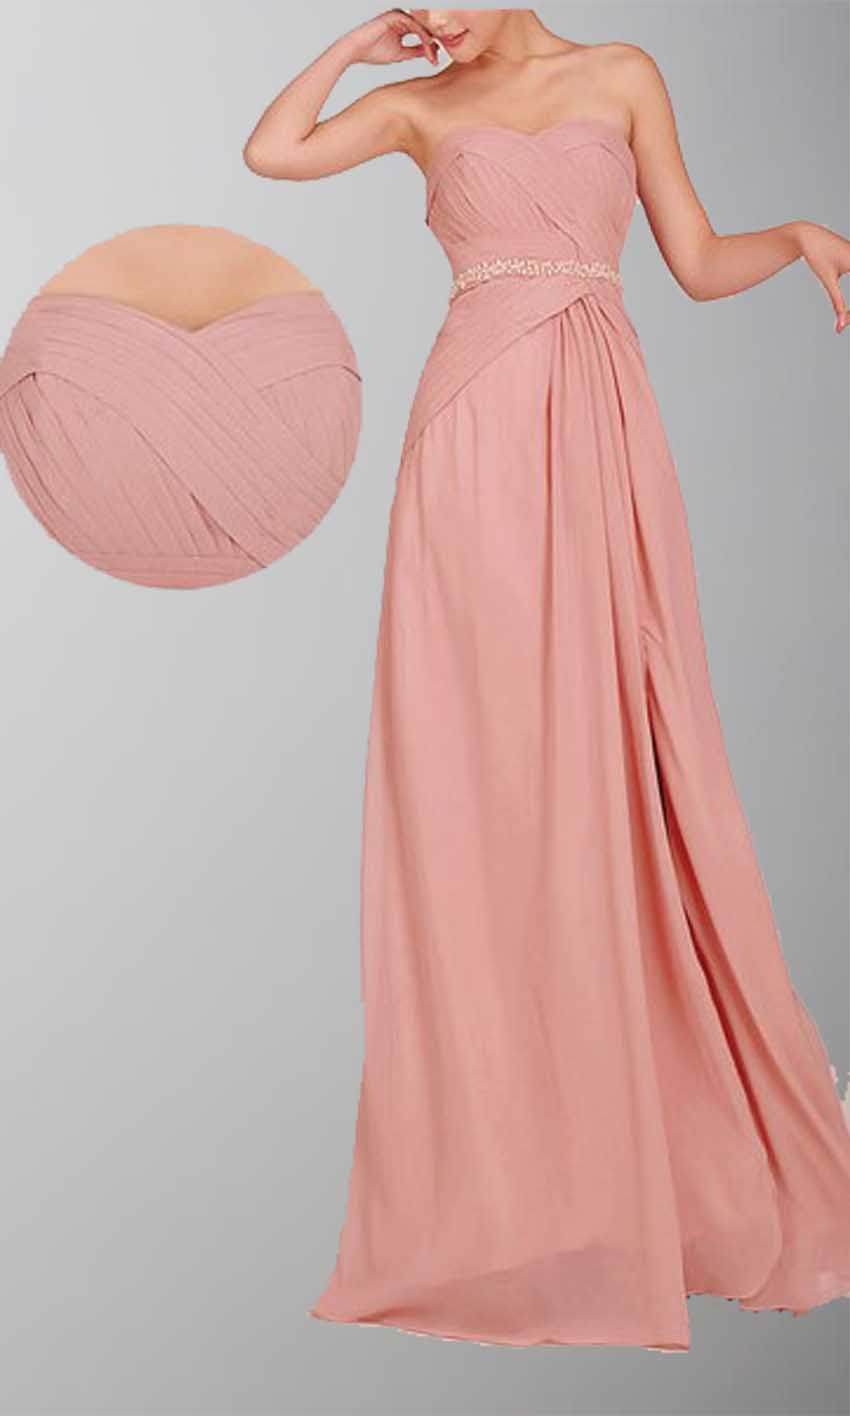 Sweetheart A-line Slit Long Prom Dresses KSP023 [KSP023] - £88.00 : Cheap Prom Dresses Uk, Bridesmaid Dresses, 2014 Prom & Evening Dresses, Look for cheap elegant prom dresses 2014, cocktail gowns, or dresses for special occasions? kissprom.co.uk offers various bridesmaid dresses, evening dress, free shipping to UK etc.